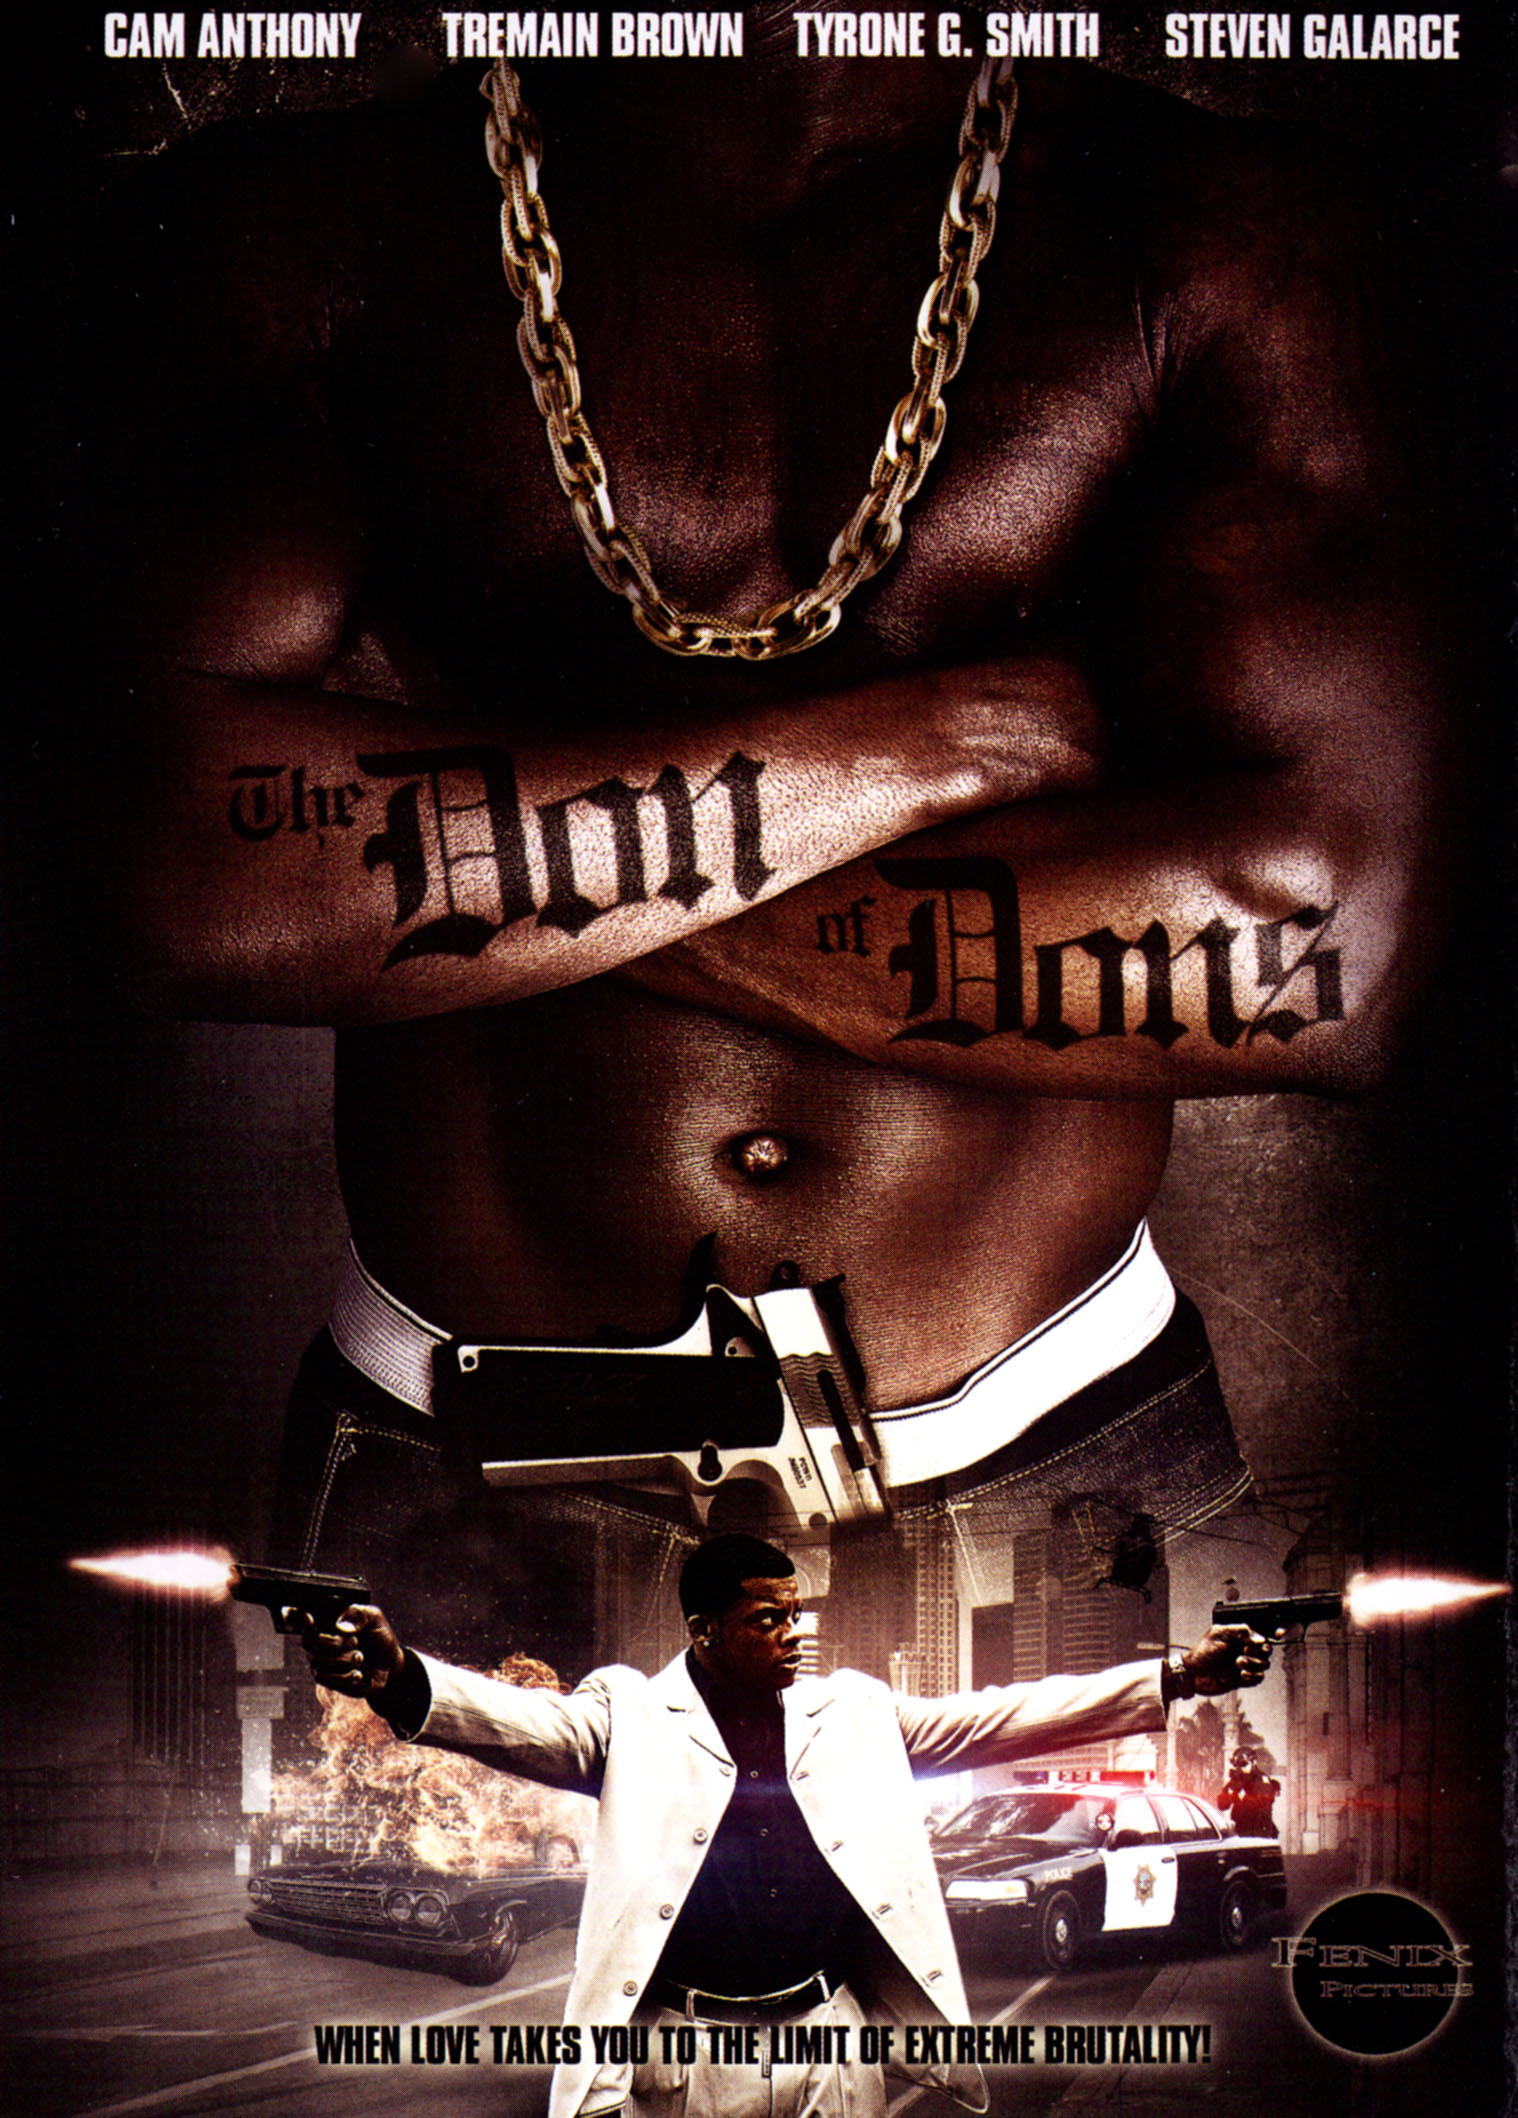 The Don of Dons